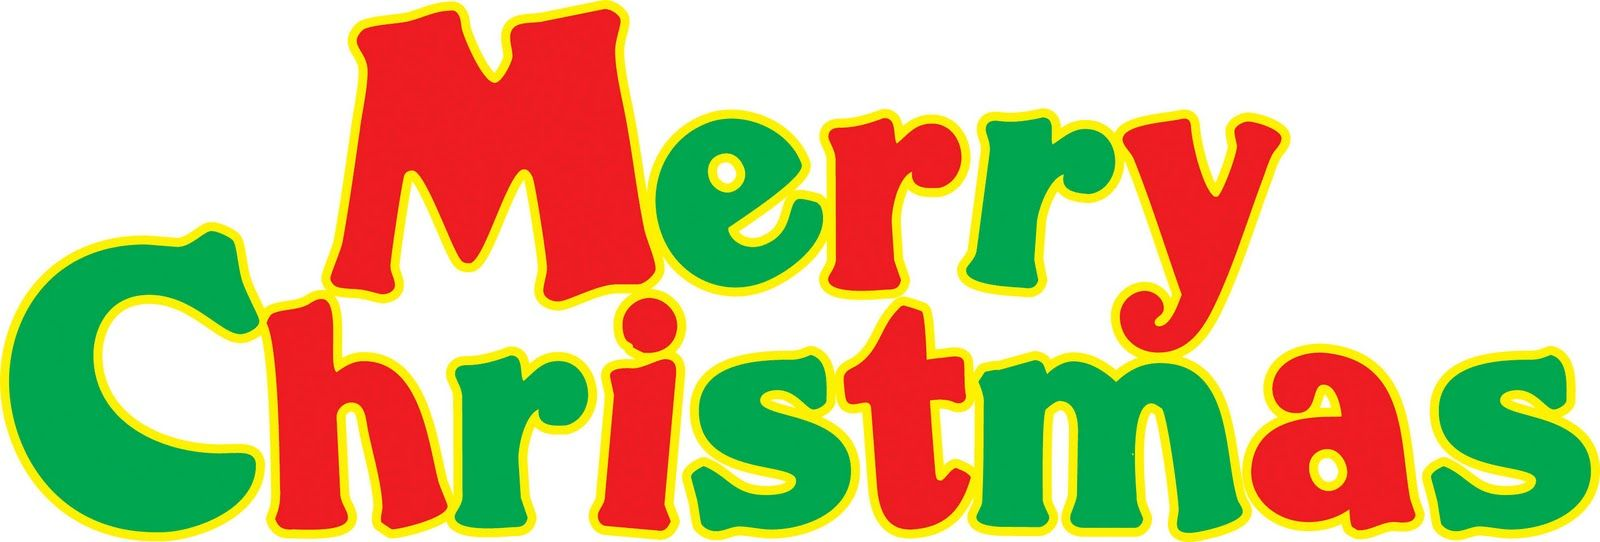 merry christmas clip art use these free images for your websites rh pinterest co uk  merry christmas banner clipart